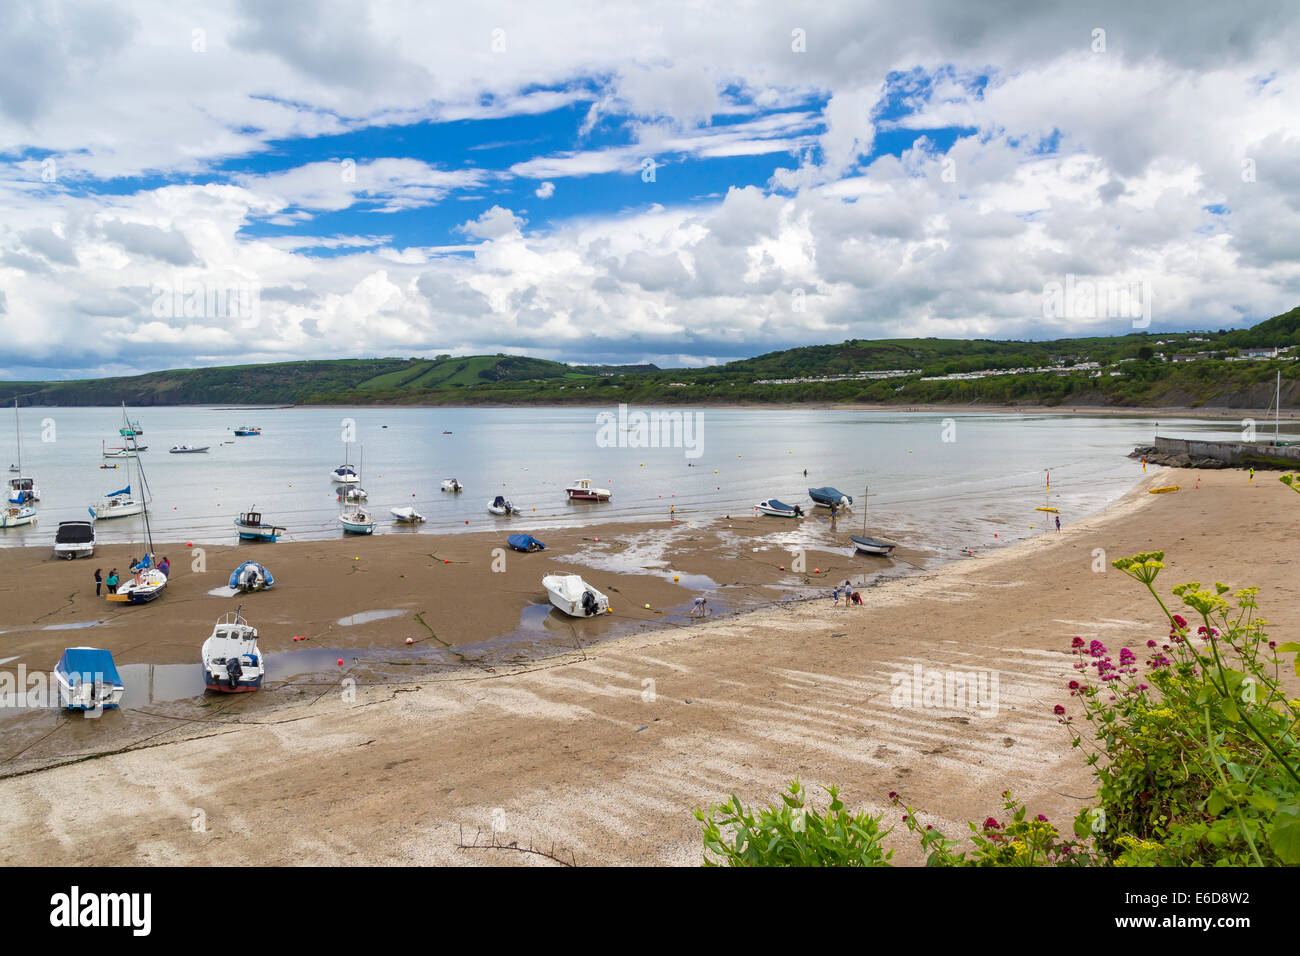 Boats in New Quay Harbour Wales UK Europe - Stock Image